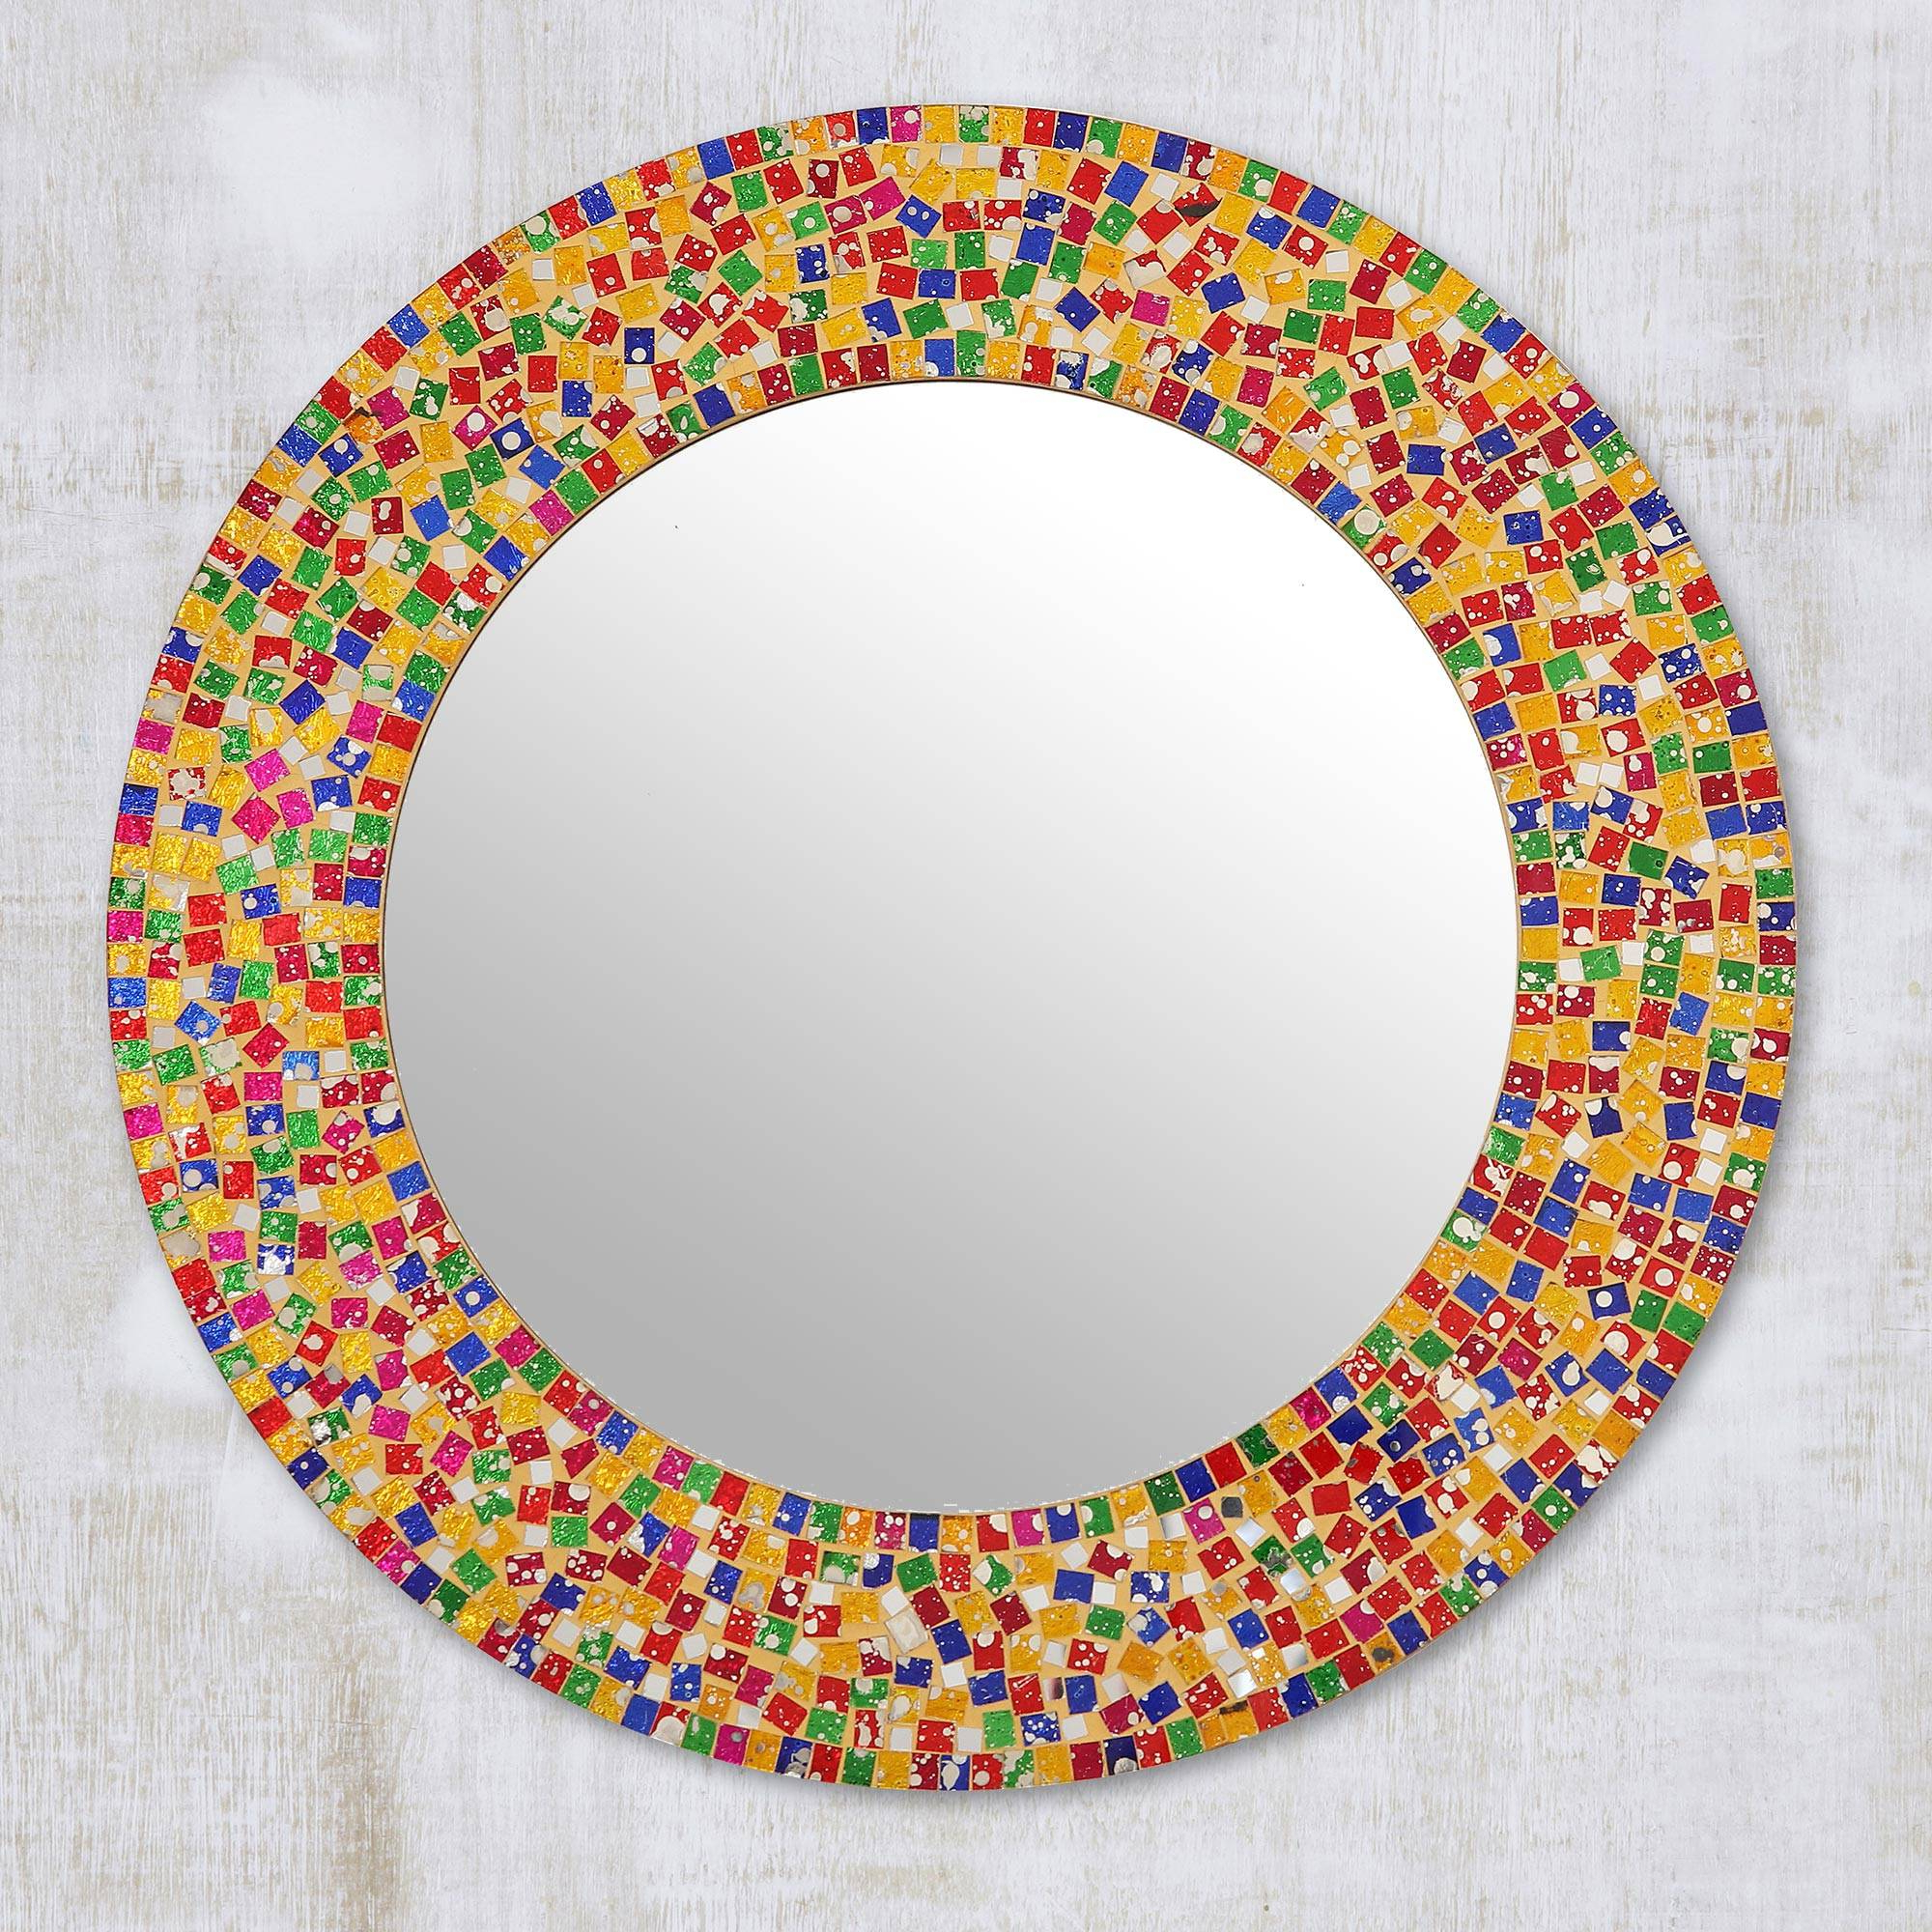 Best And Newest Round Colorful Glass Mosaic Wall Mirror From India, 'colorful Dazzle' Intended For Mosaic Wall Mirrors (View 3 of 20)